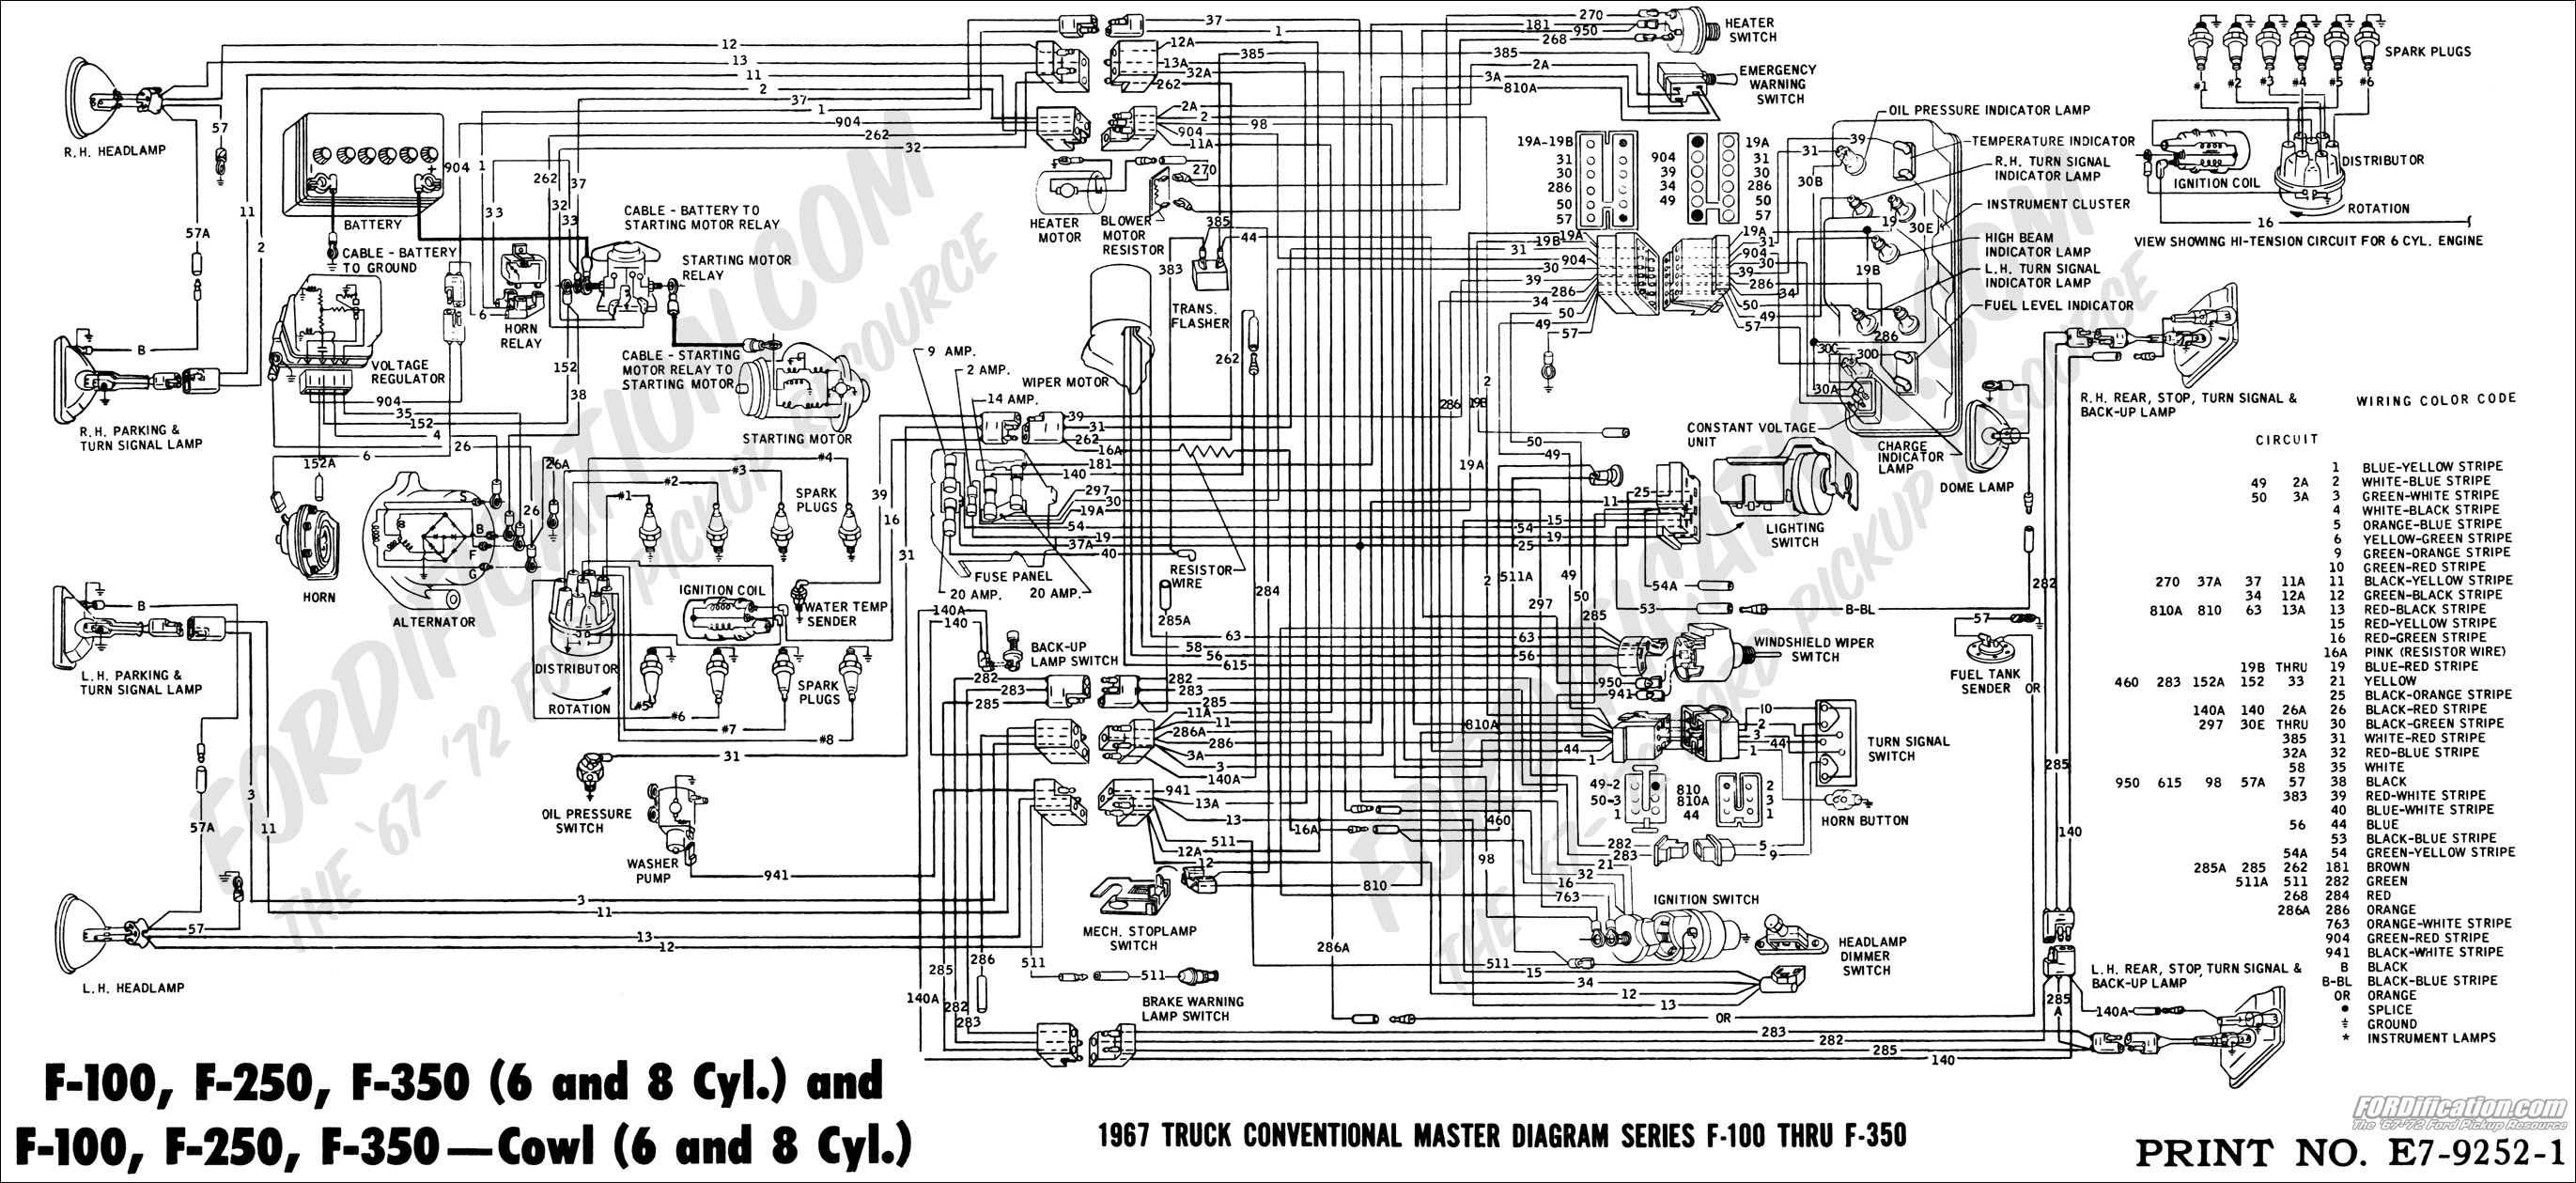 1970 Ford Wiring Schematic Library Ck3100 Diagram F100 Fordmanualscom 1975 Truck Shop Rh Prixdelor Co